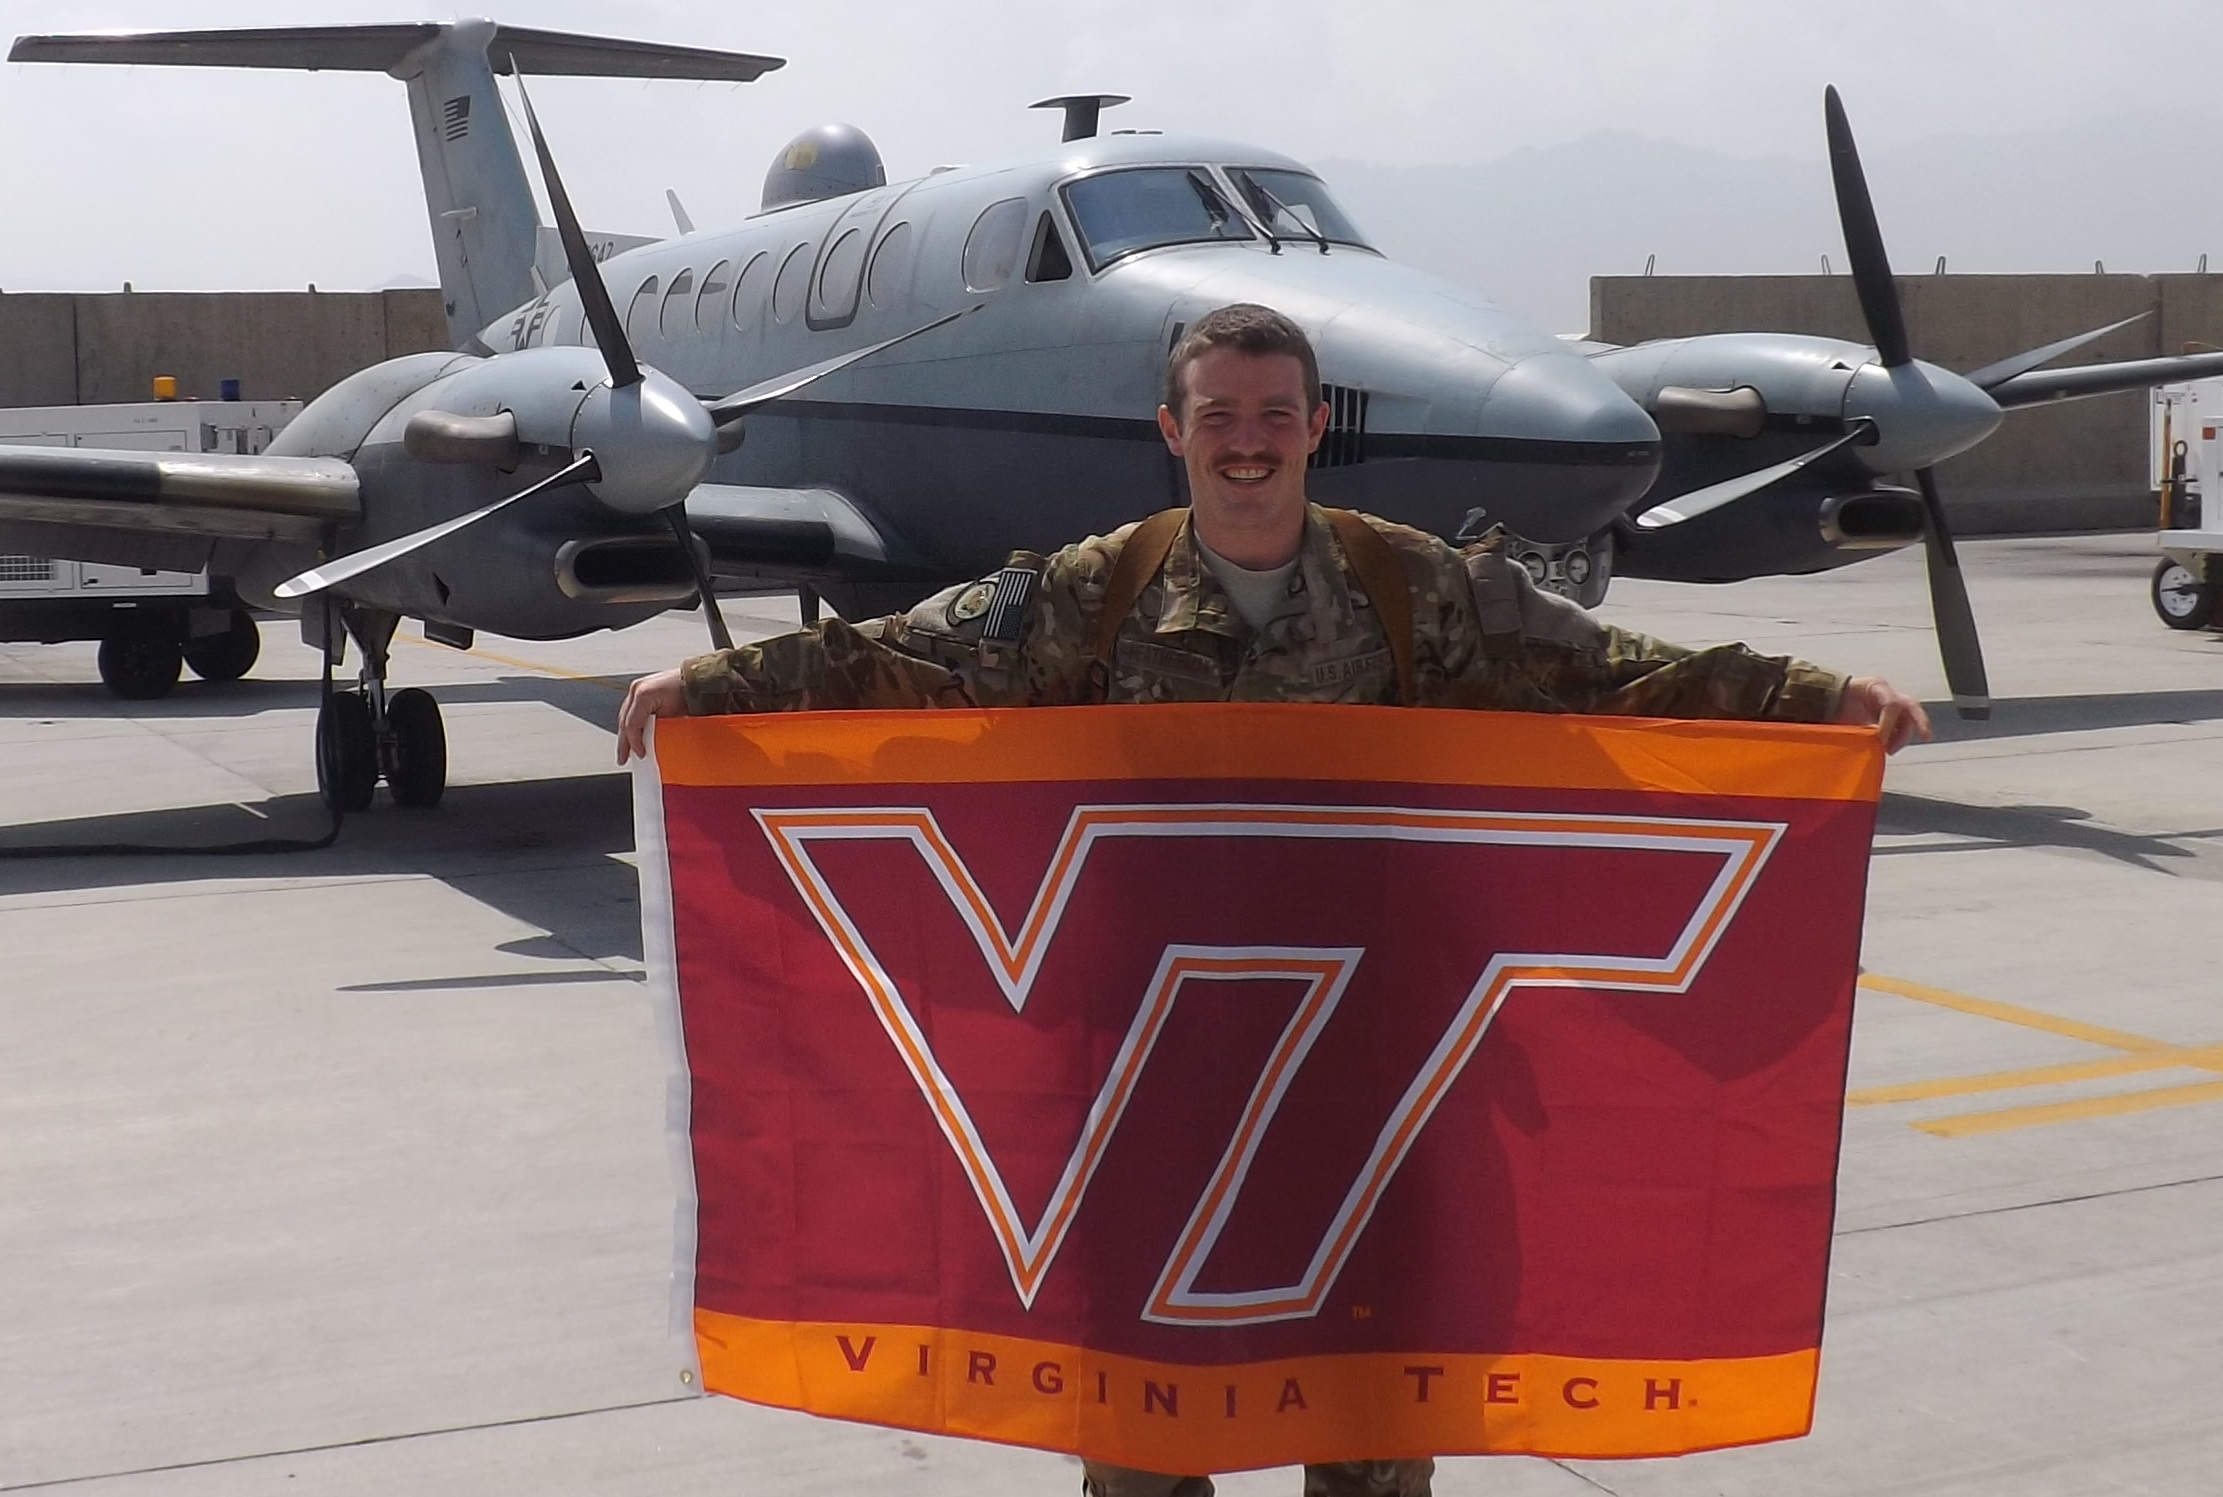 1st Lt. Sean Heatherman, U.S. Air Force, Virginia Tech Corps of Cadets Class of 2010 in Afghanistan